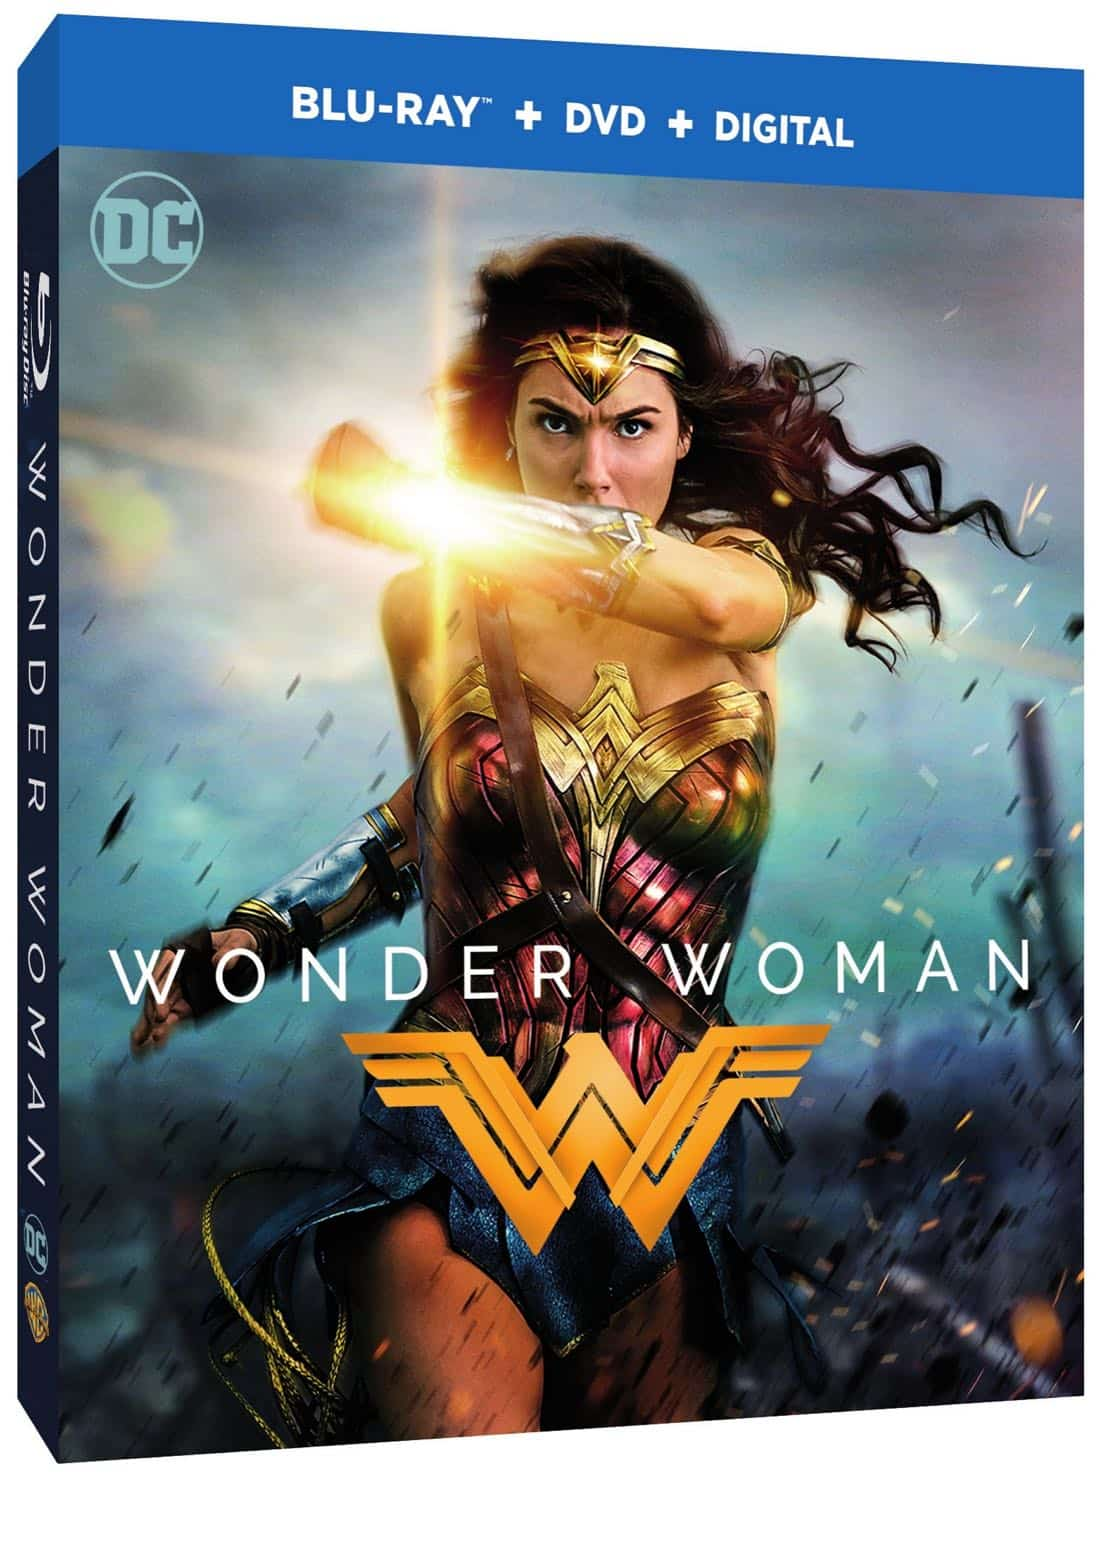 Wonder-Woman-Bluray-dvd-digital-cover